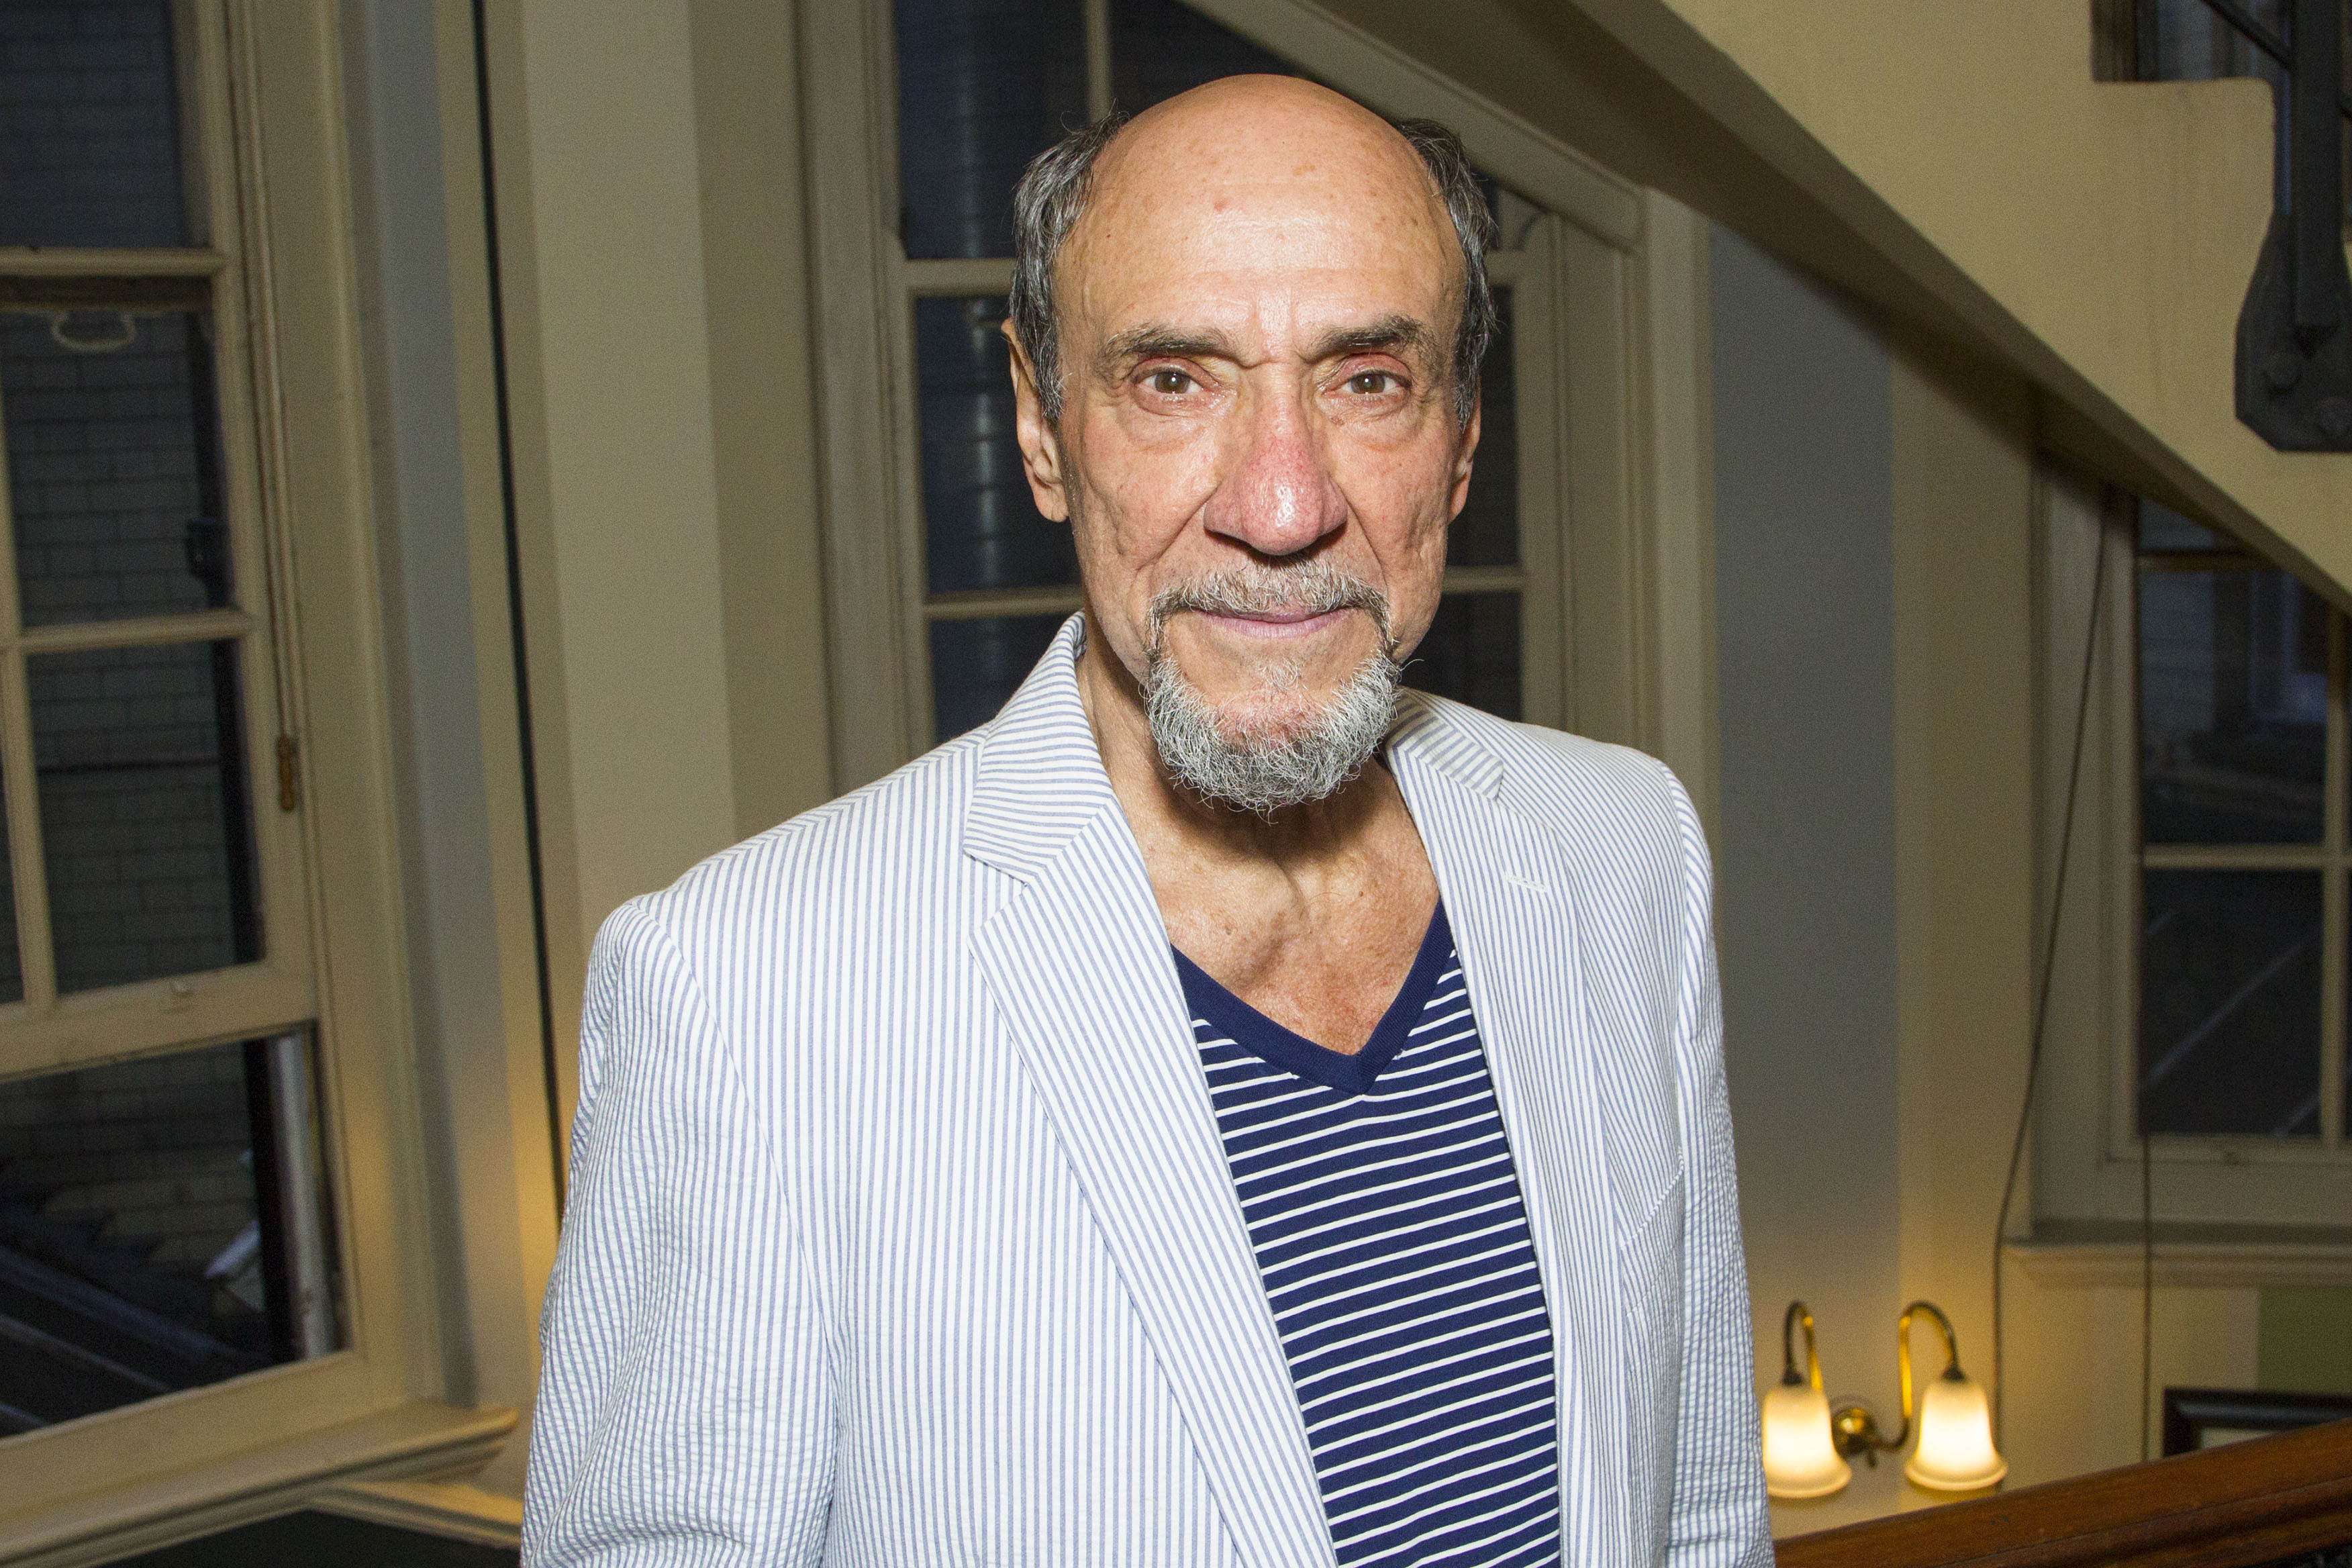 How To Train Your Dragon 3 F Murray Abraham To Play Villain Deadline